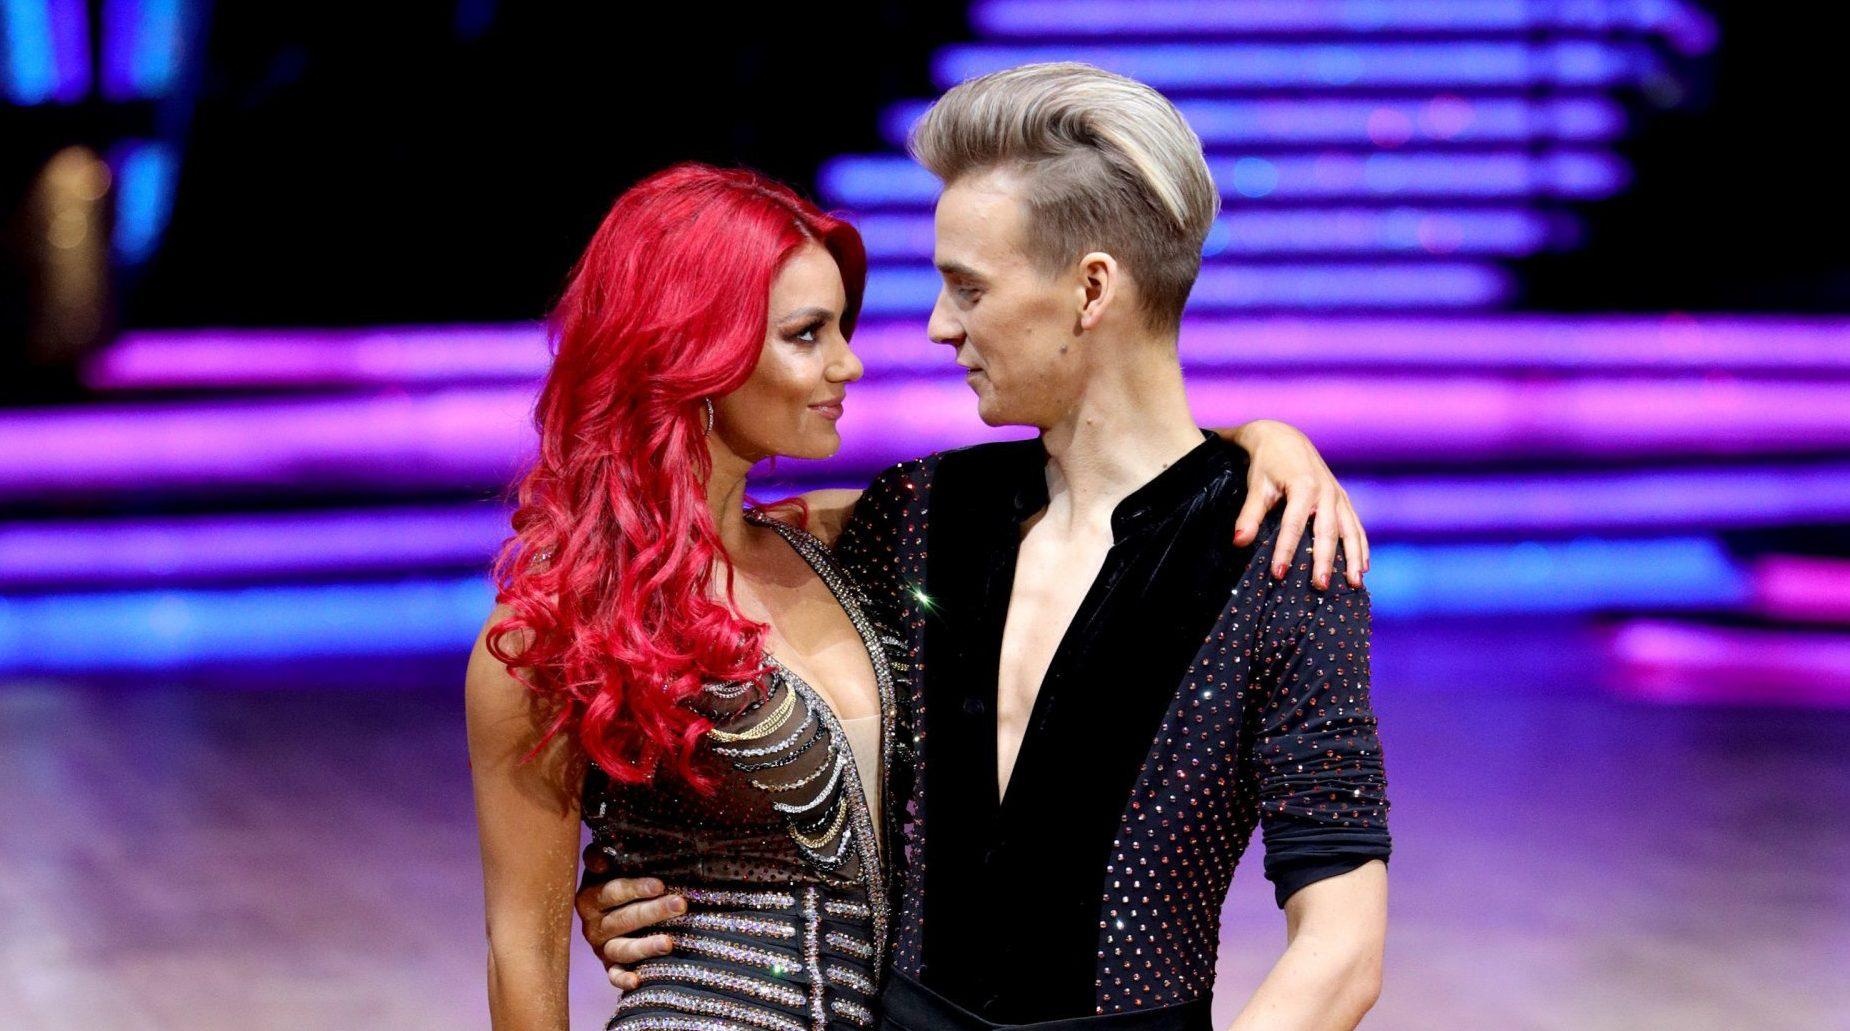 Strictly's Joe Sugg and Dianne Buswell 'fall out' with co-stars on tour over 'non-stop PDA'